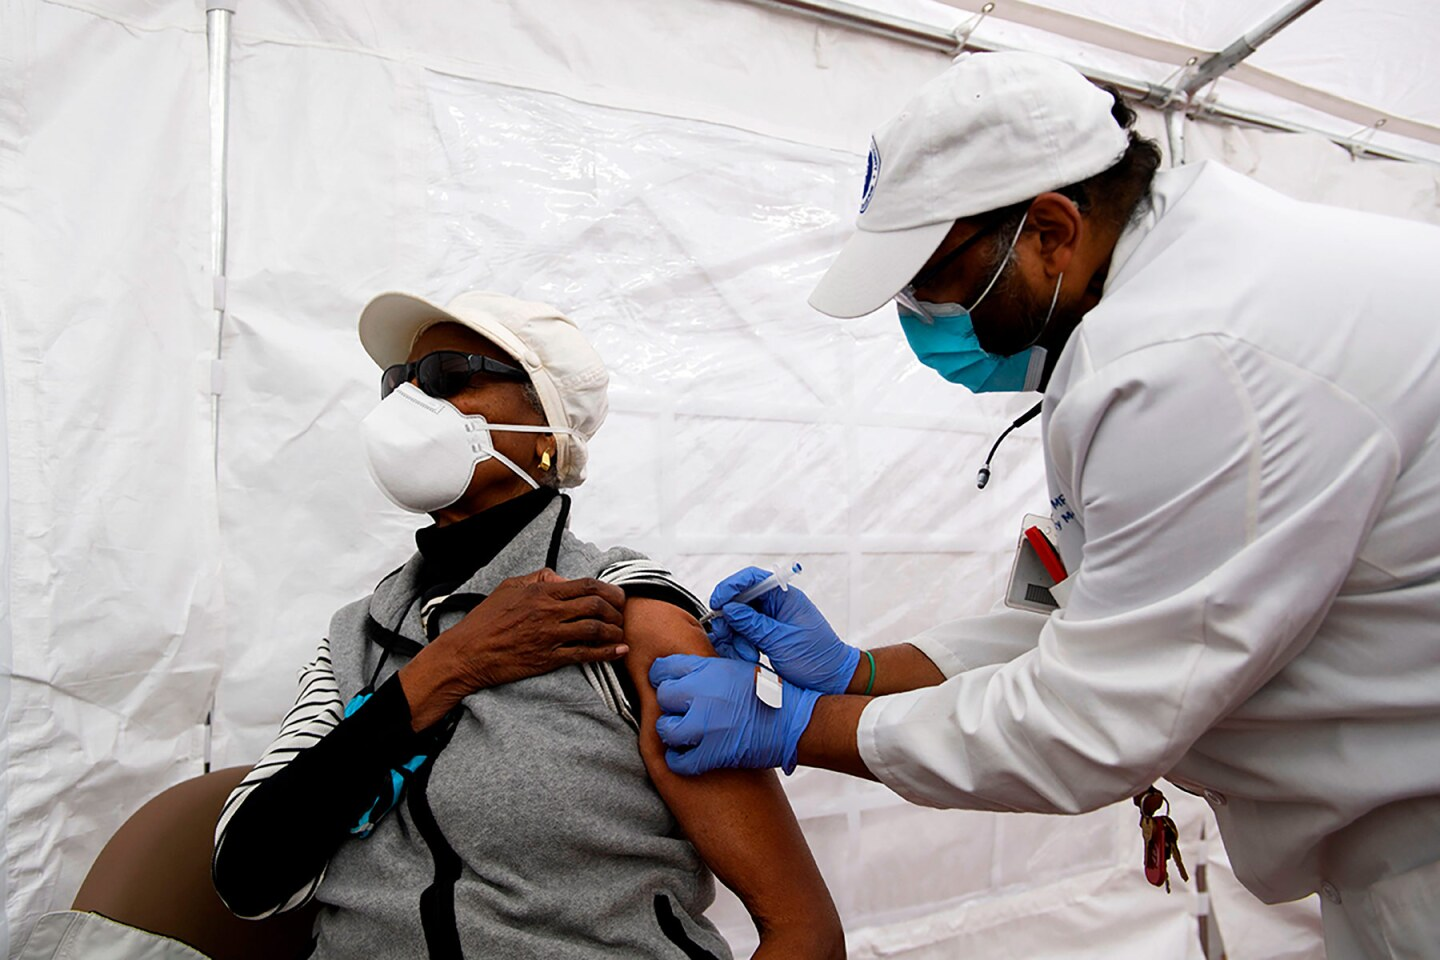 Dr. Jerry P. Abraham administers a COVID-19 vaccination to a senior citizen in a vaccination tent at the Kedren Community Health Center on January 25, 2021 in Los Angeles, California.